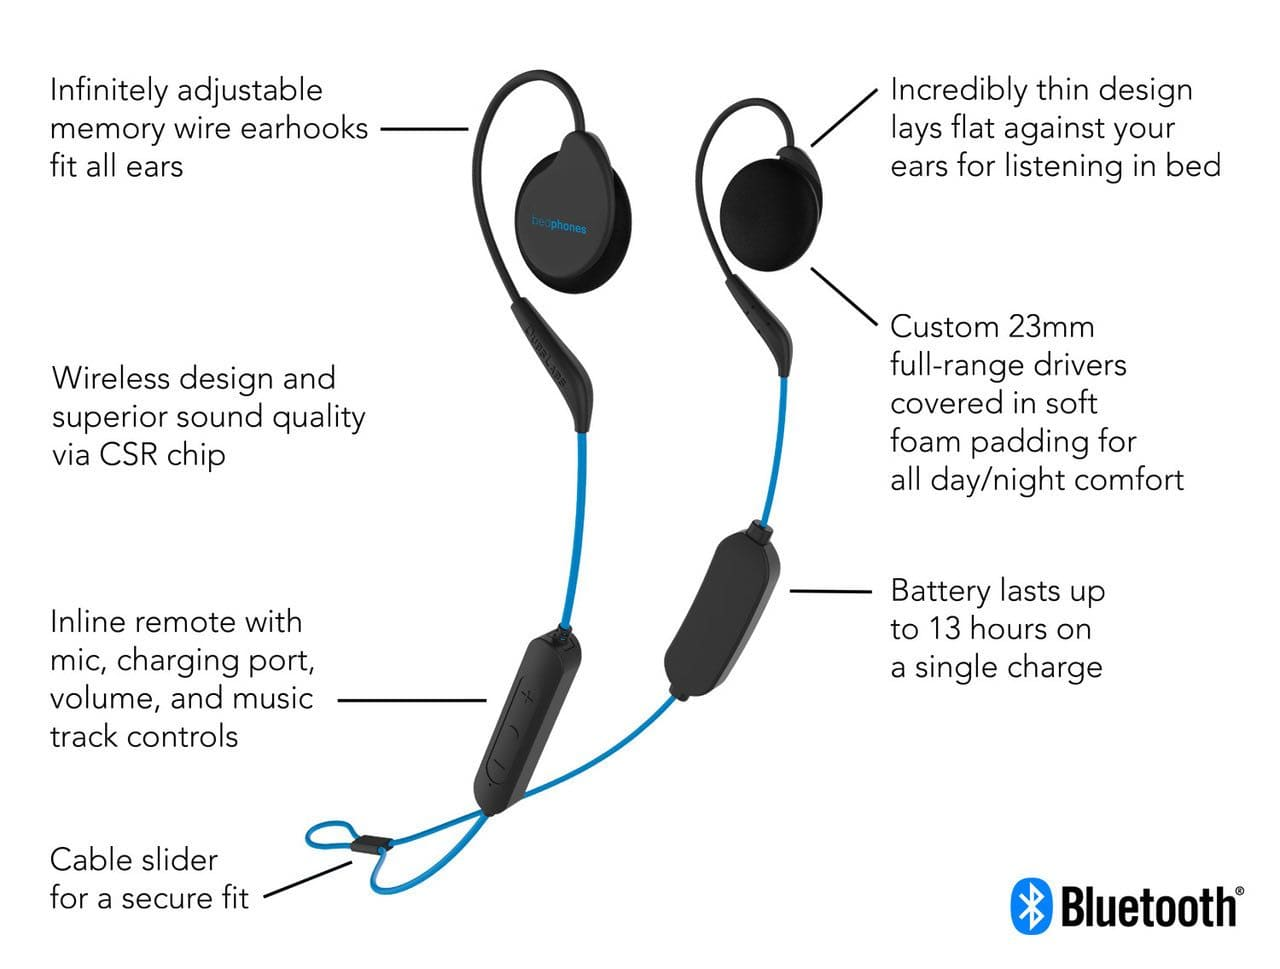 The Best Headphones And Earbuds For Sleeping In 2020 Sleepgadgets Io